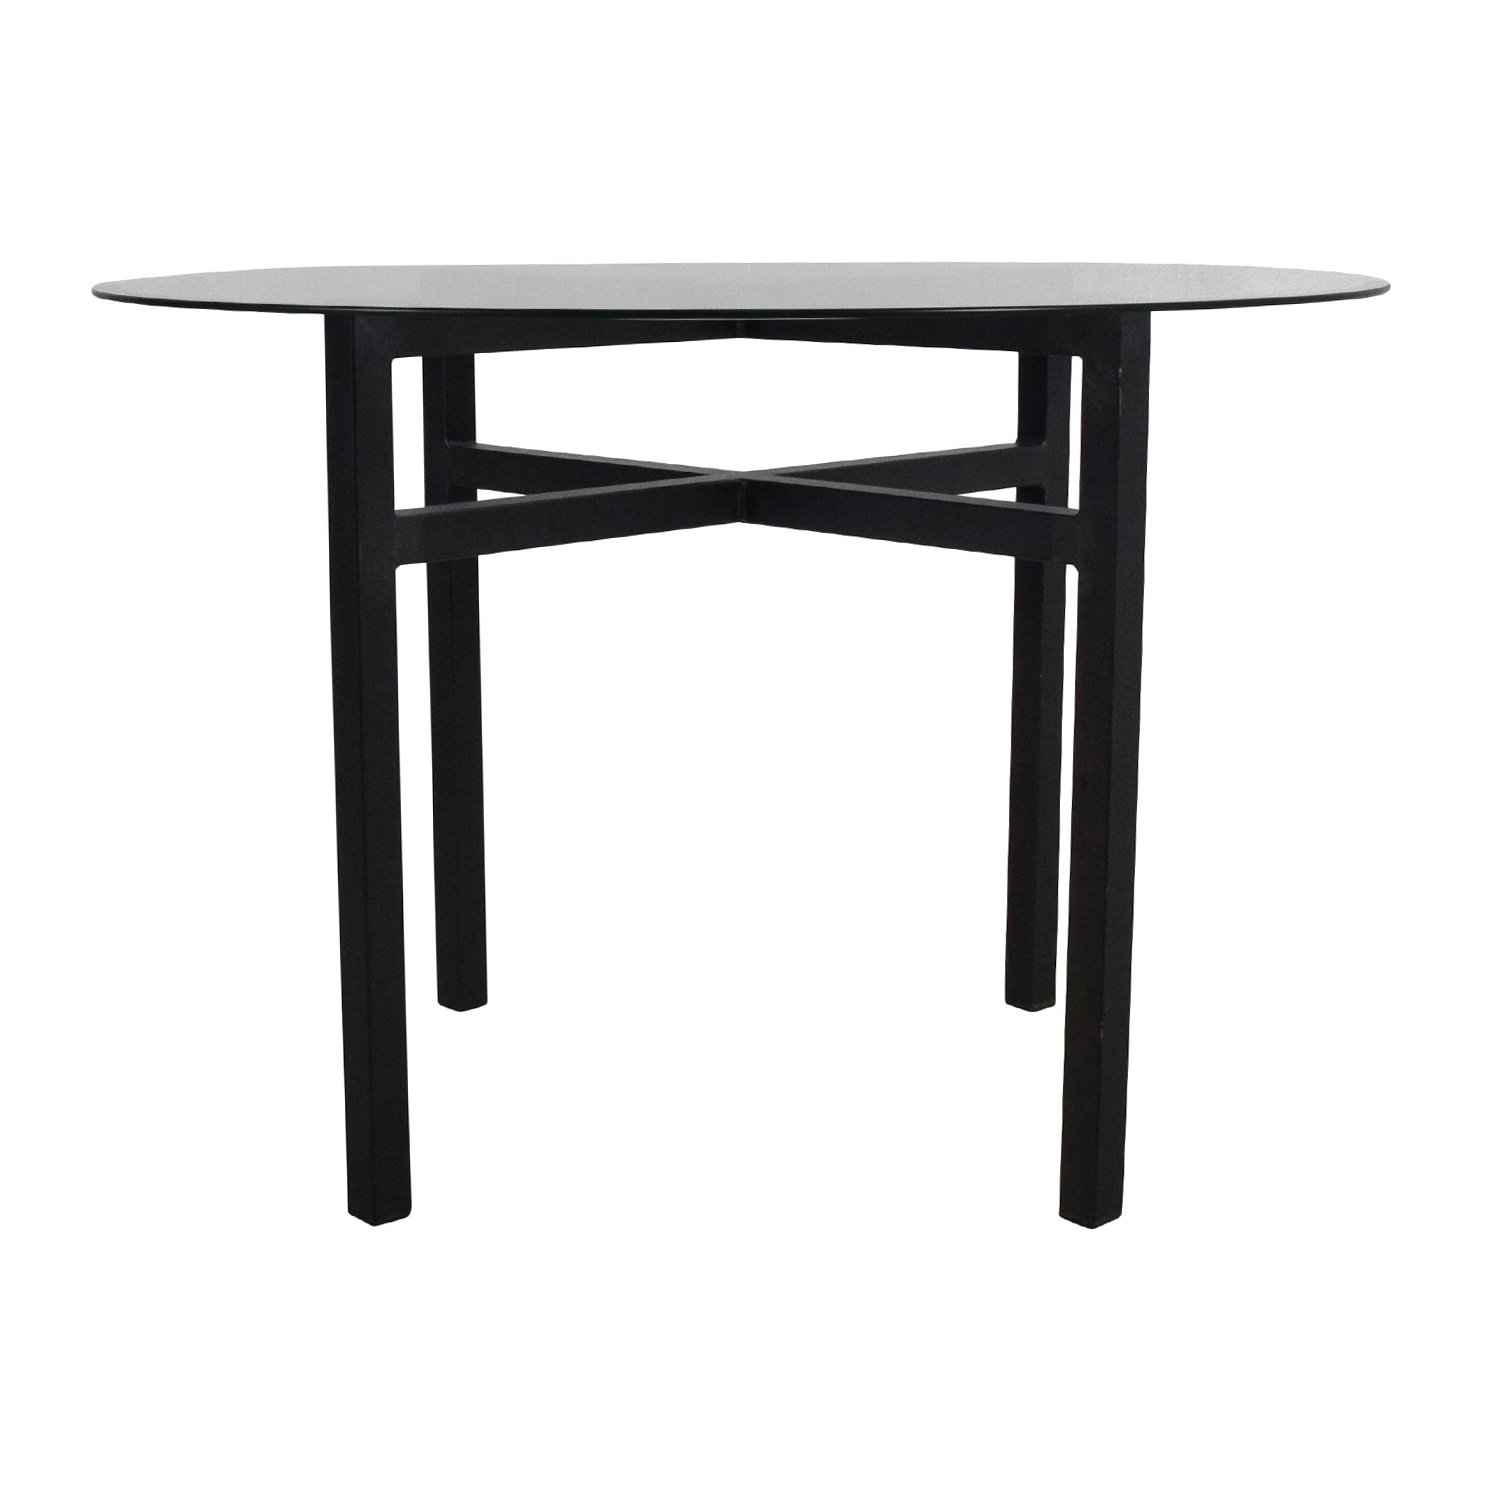 69% Off – Room And Board Room & Board Benson Glass Top Dining Table Within Most Recent Benson Rectangle Dining Tables (Image 2 of 20)